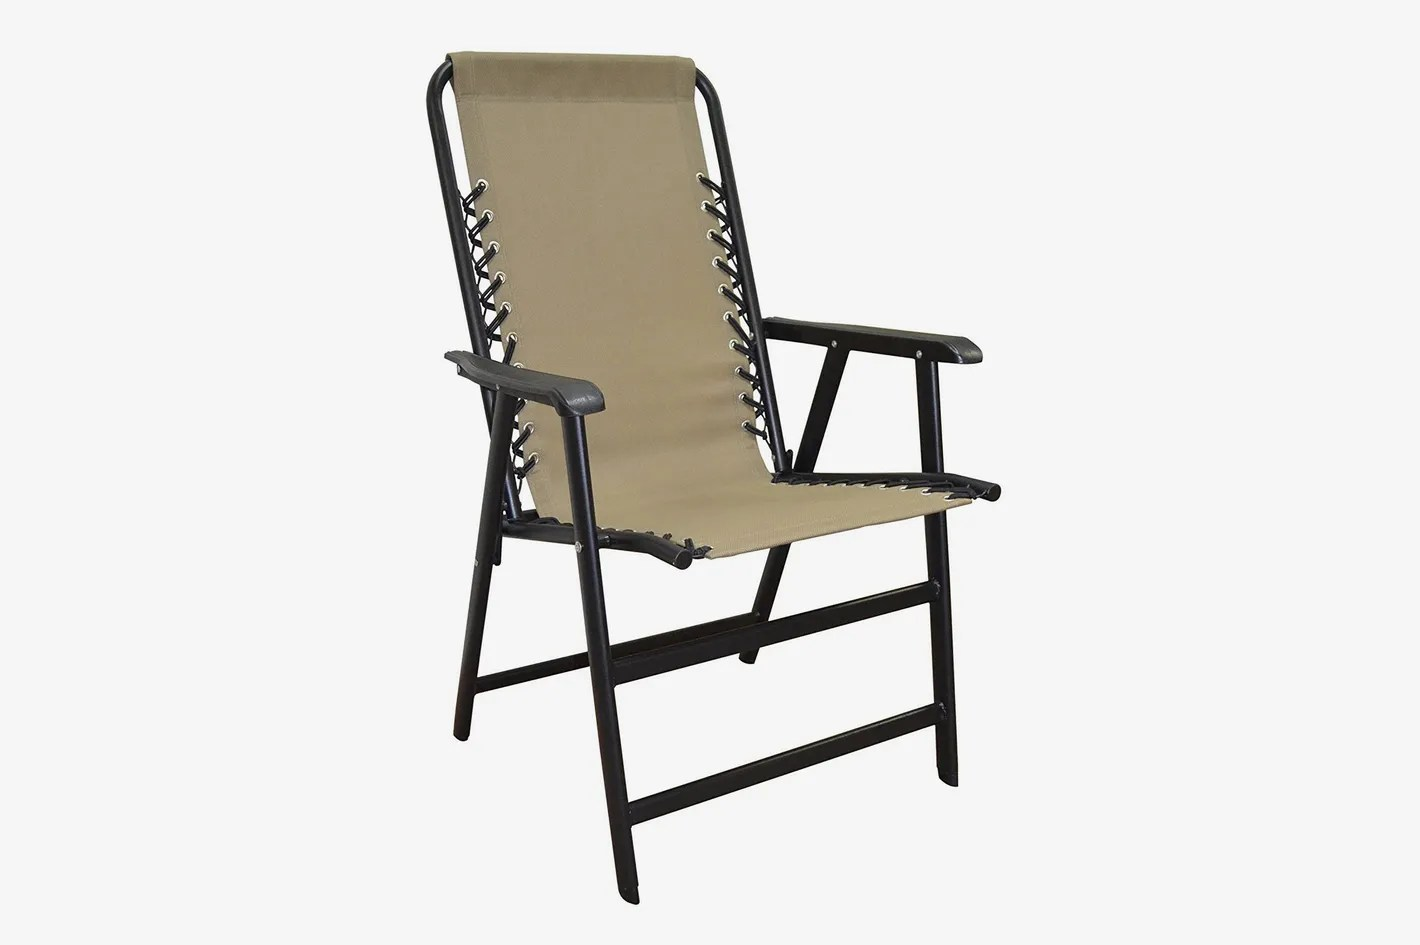 Patio Folding Chairs The 19 Best Stacking And Folding Chairs 2019